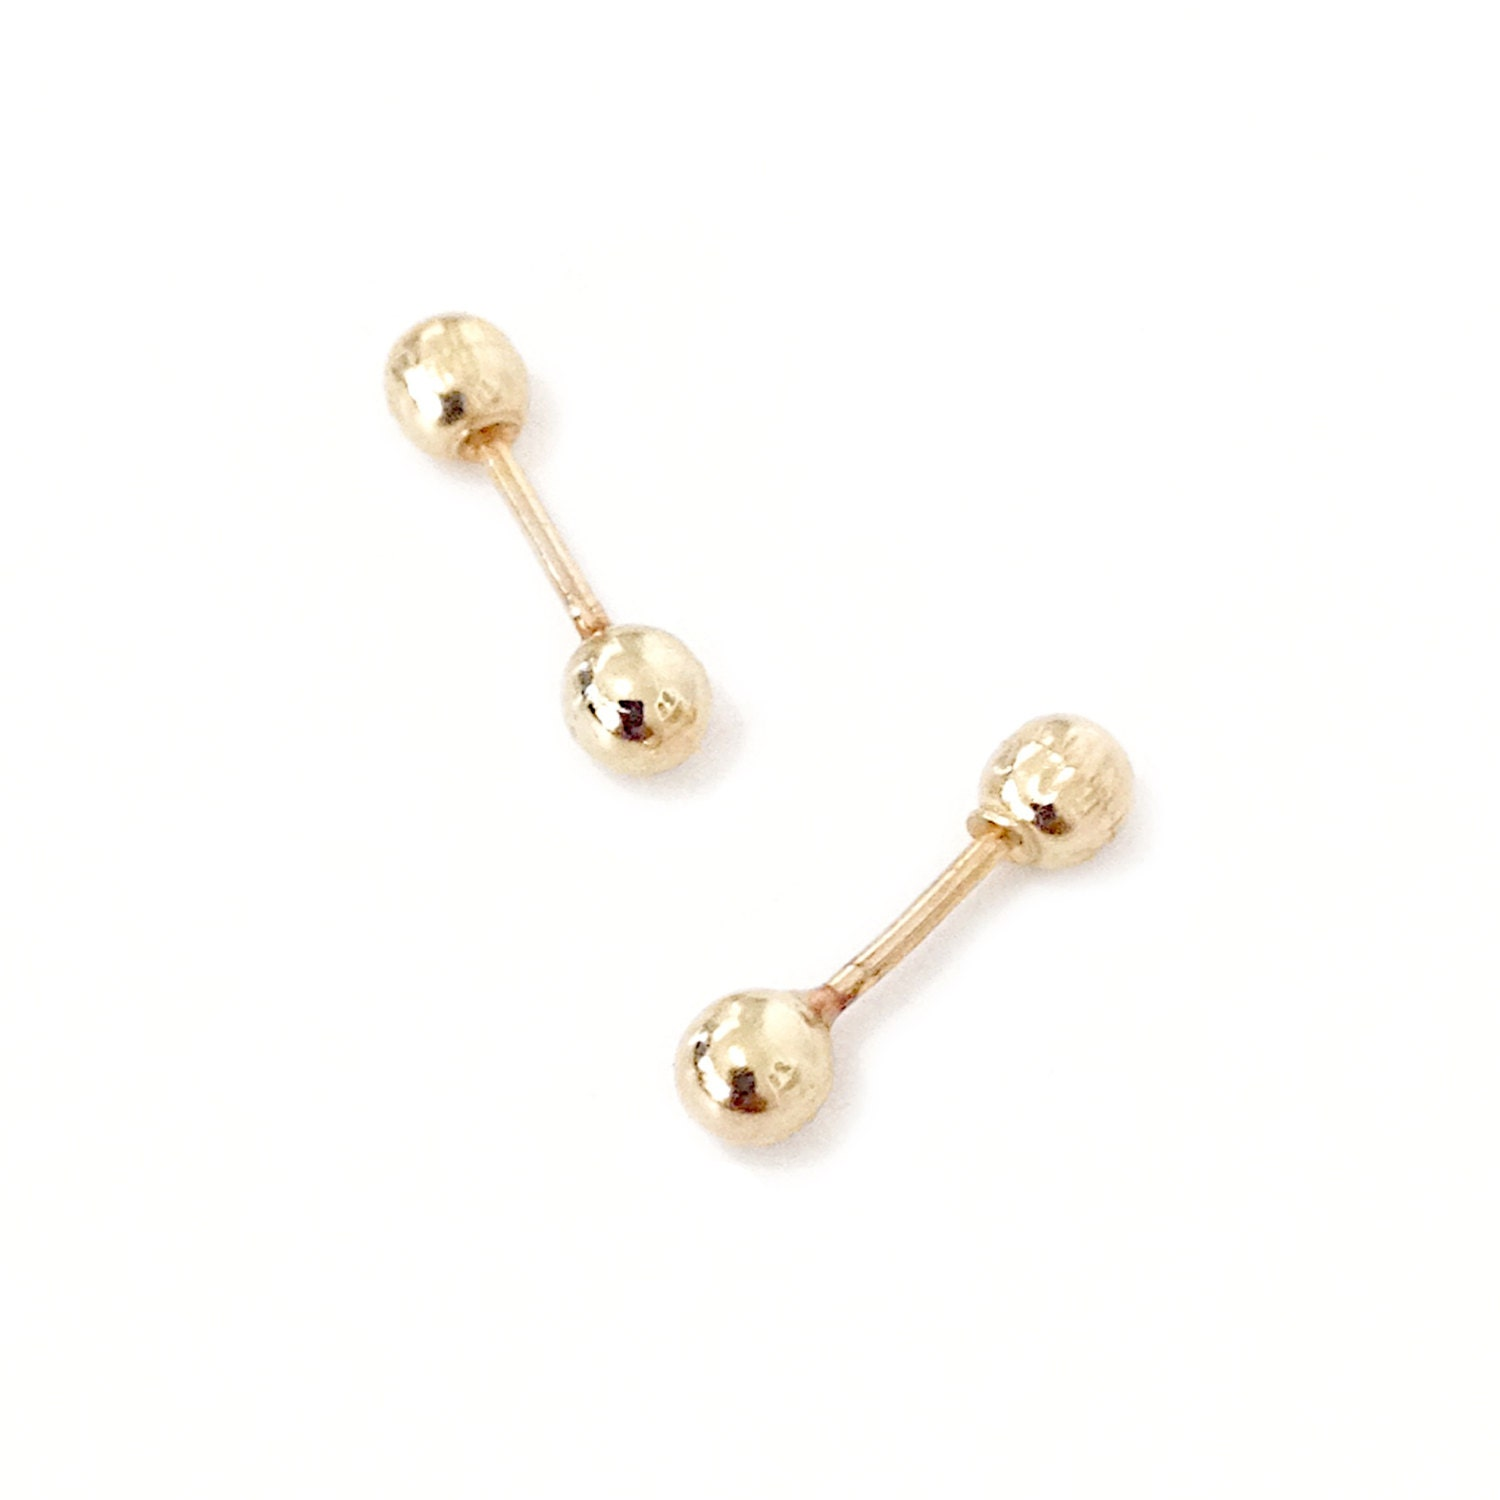 xs barbell 14k gold hollow stud earrings unisex great for